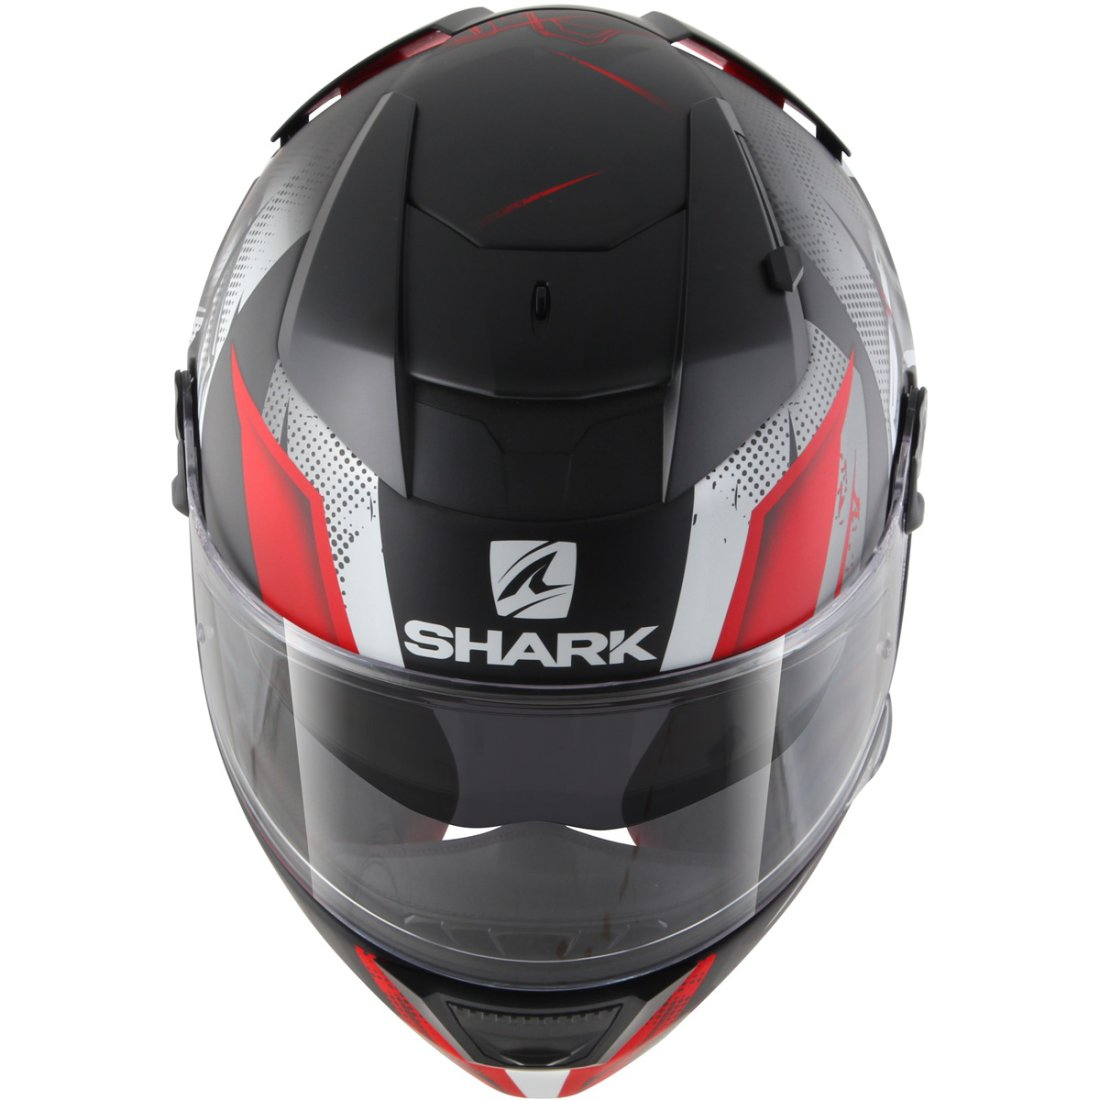 helmet shark speed r series2 tizzy mat black red white motocard. Black Bedroom Furniture Sets. Home Design Ideas